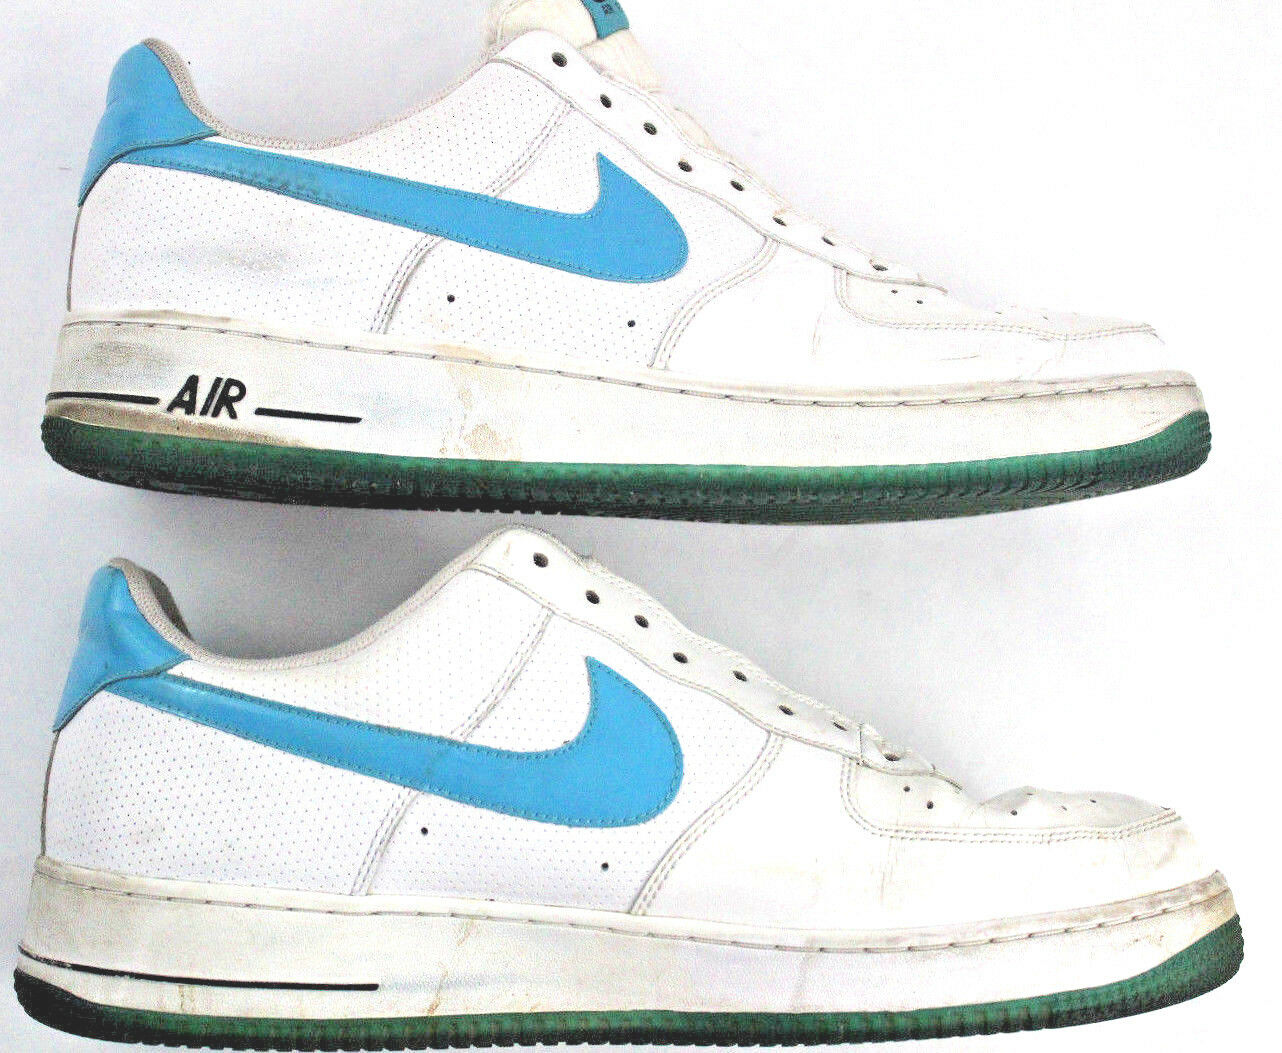 Nike Air Force 1 Low White Blue Shoes 315122-110 Men's Price reduction